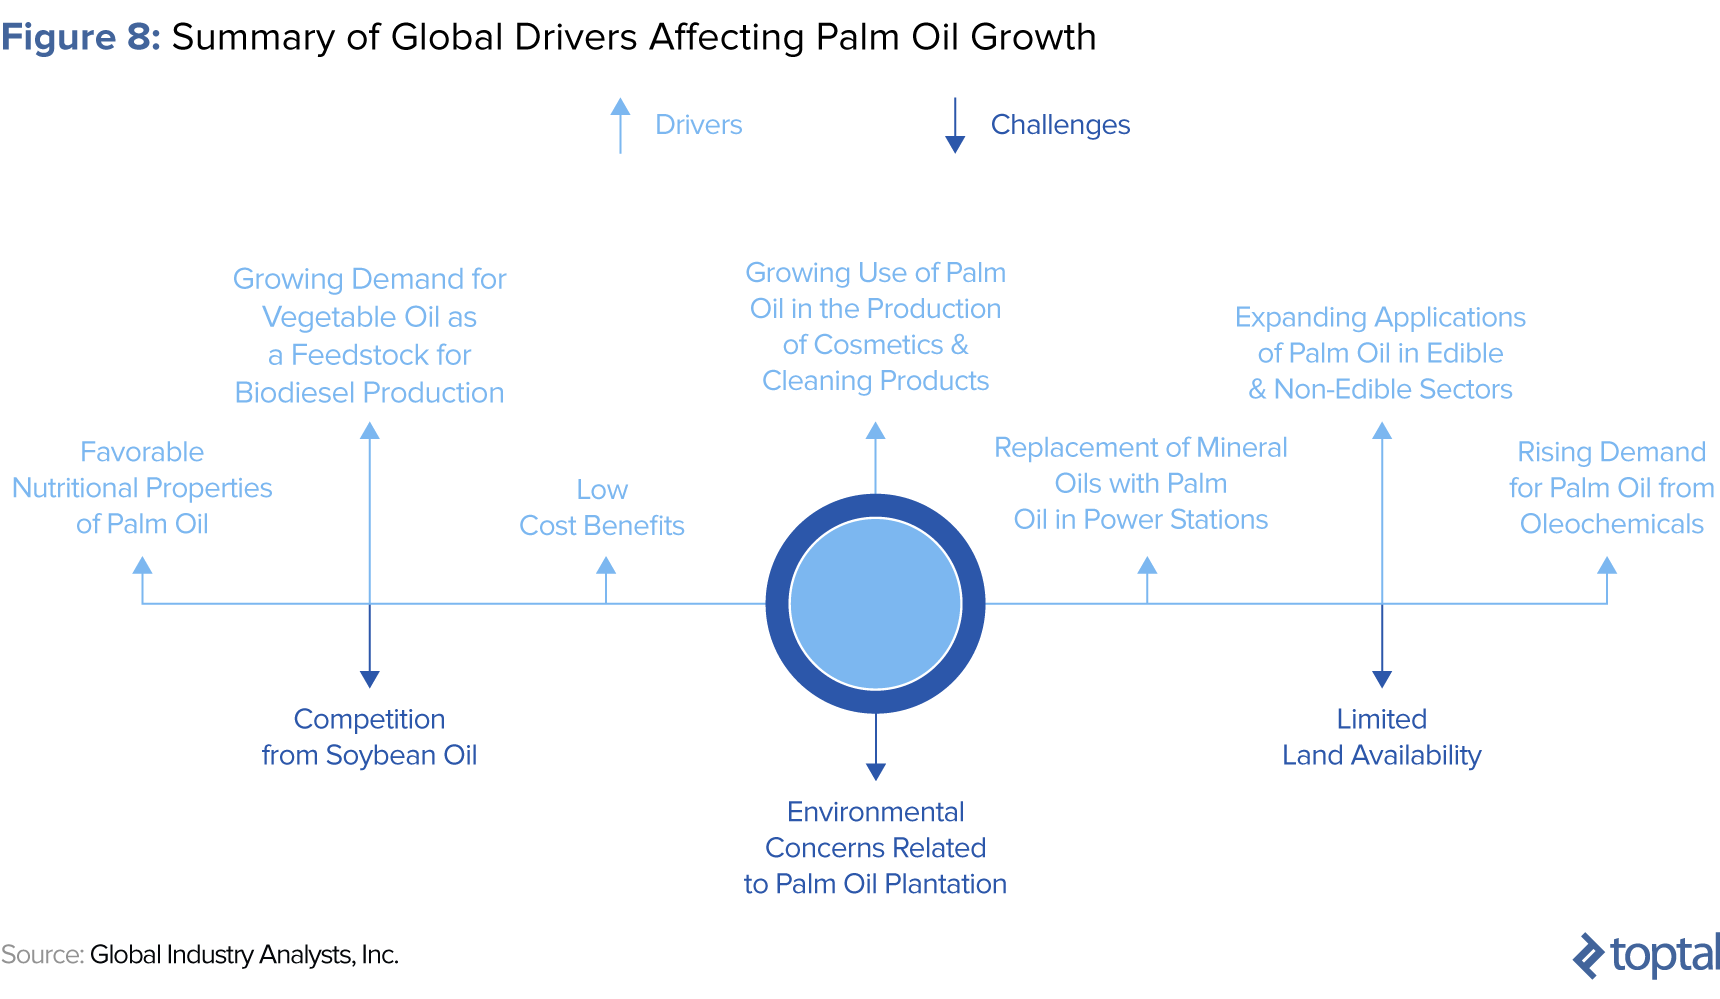 Figure 8: Summary of Global Drivers Affecting Palm Oil Growth